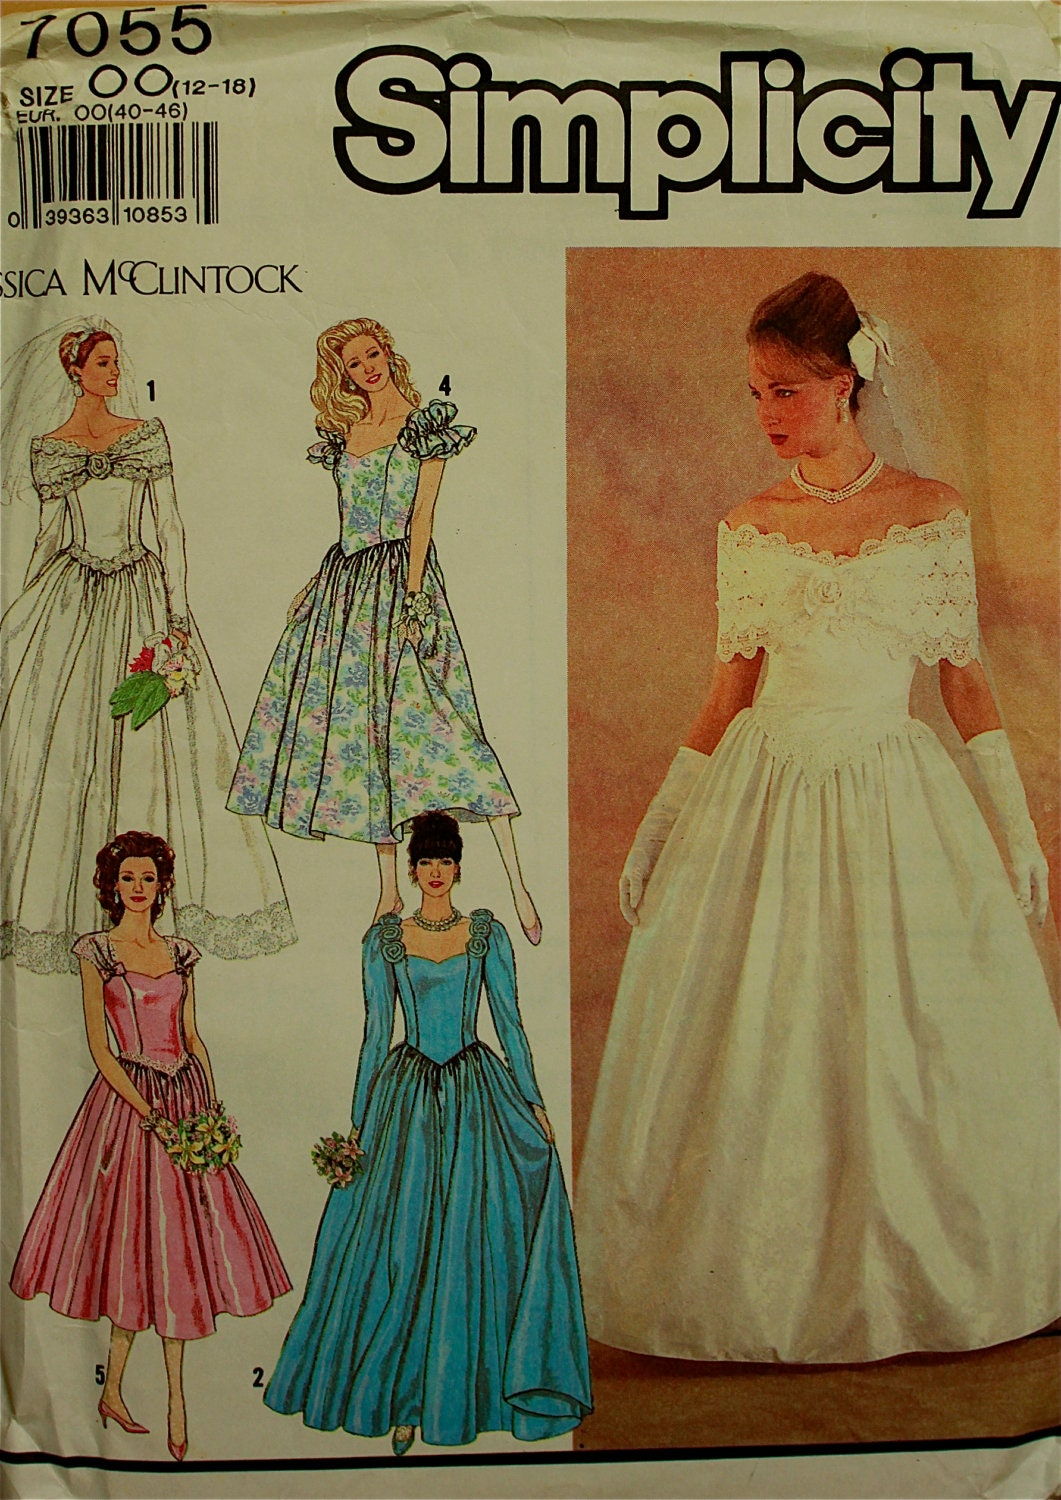 1990s Evening or Bridal Dress by Jessica McClintock Simplicity